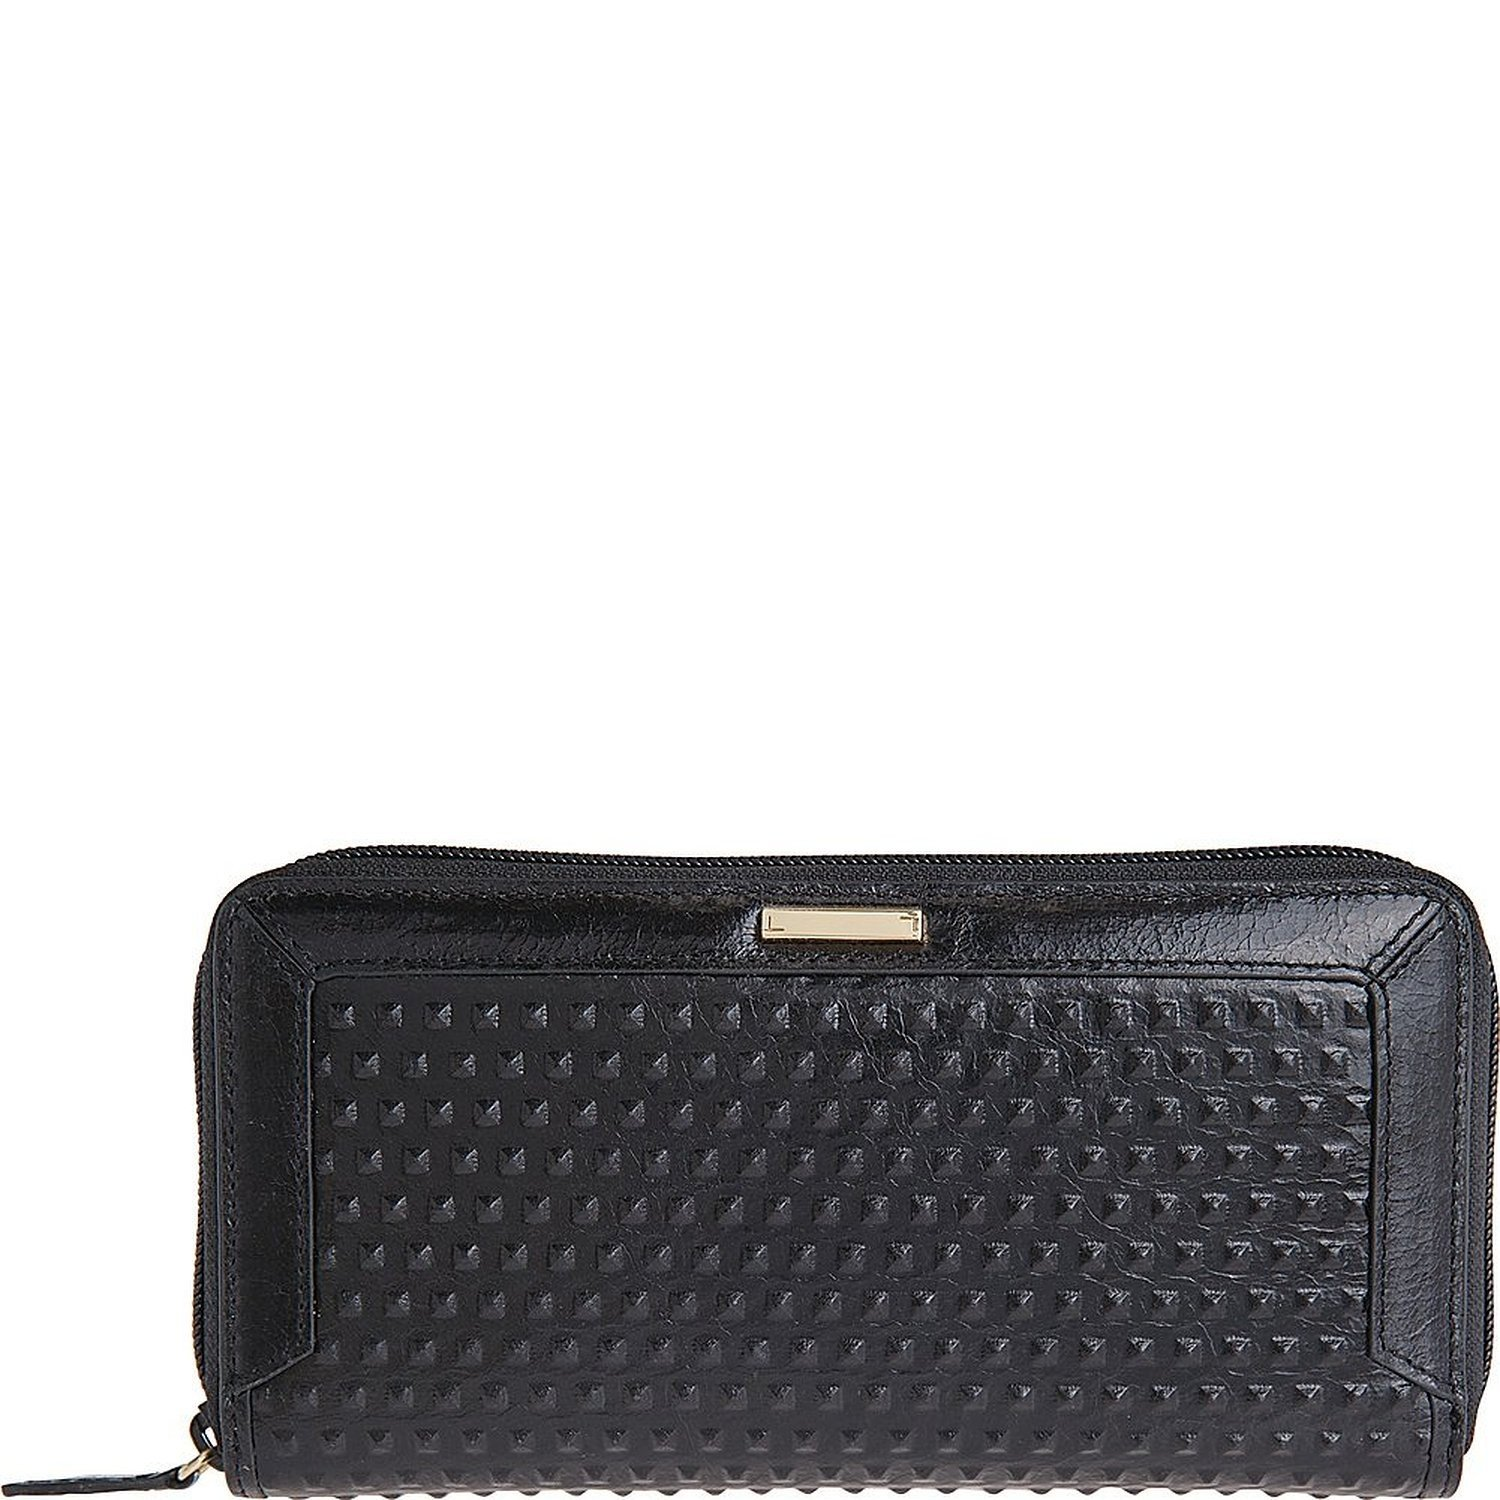 Lodis Accessories Women's Cadiz Joya Wallet Black Checkbook Wallet